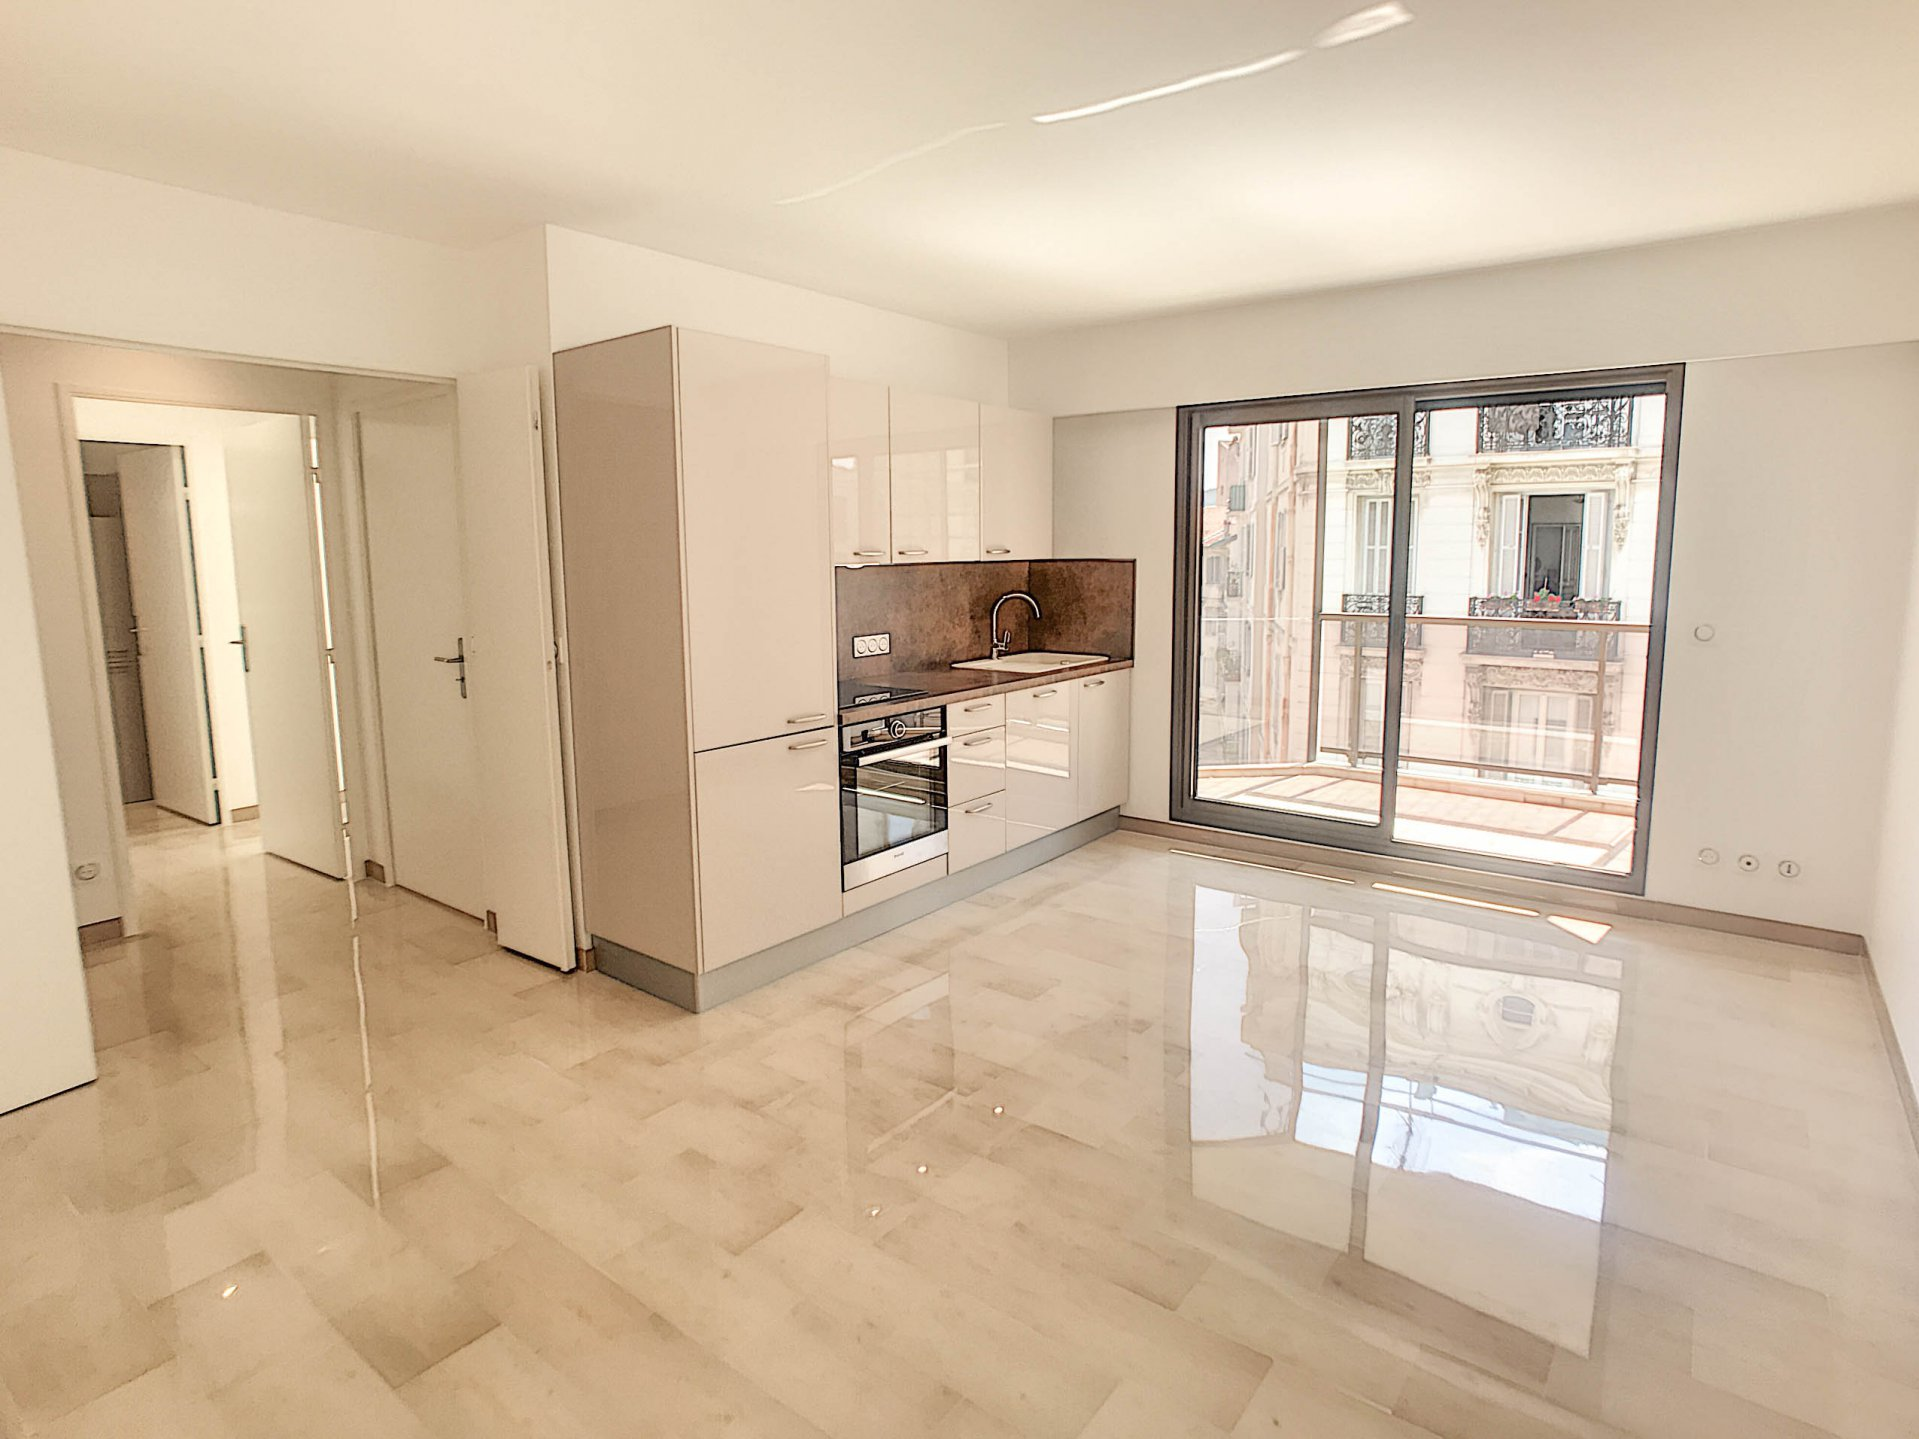 SALE Apartment 3 Room Nice Carré D'Or Terrace View Renovated